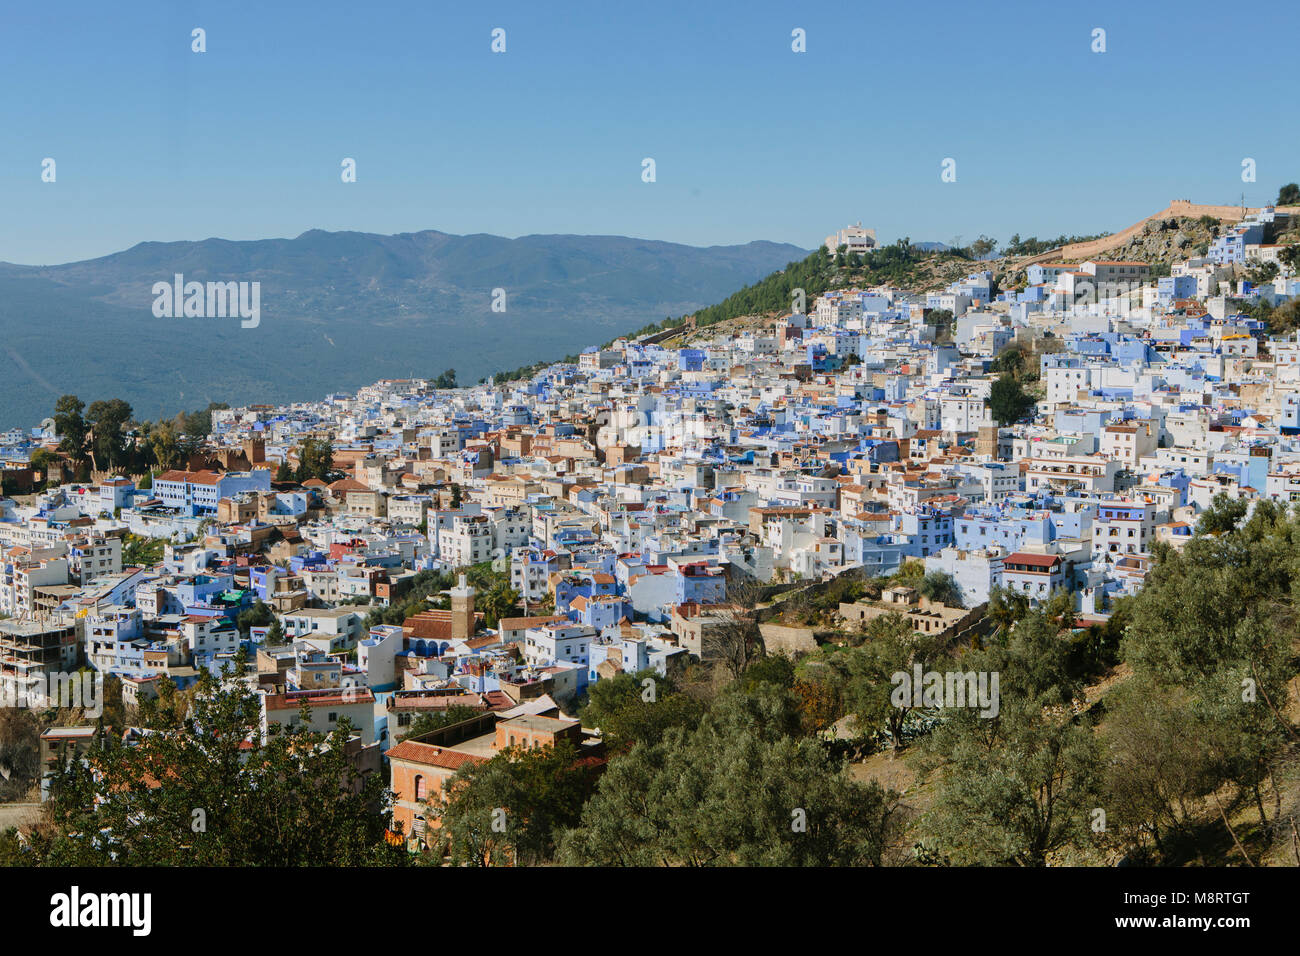 High angle view of buildings on mountain against clear blue sky - Stock Image